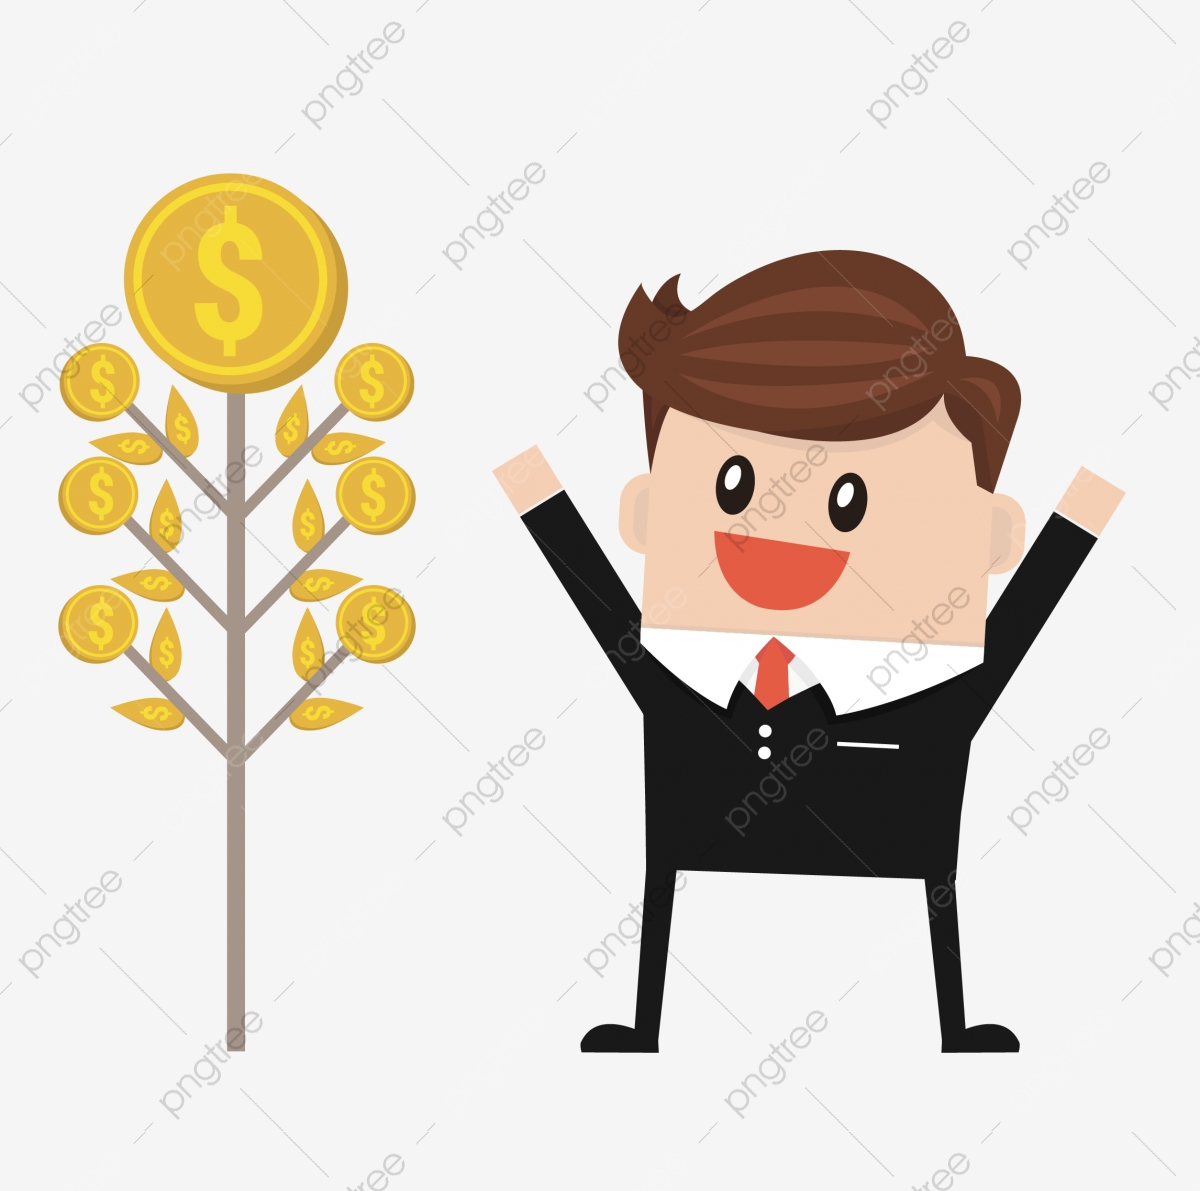 Money Tree Cartoon Cartoon Man Business Money Clipart Business Man Cartoon Business Man Png And Vector With Transparent Background For Free Download Affordable and search from millions of royalty free images, photos and vectors. https pngtree com freepng money tree cartoon cartoon man business 3921876 html